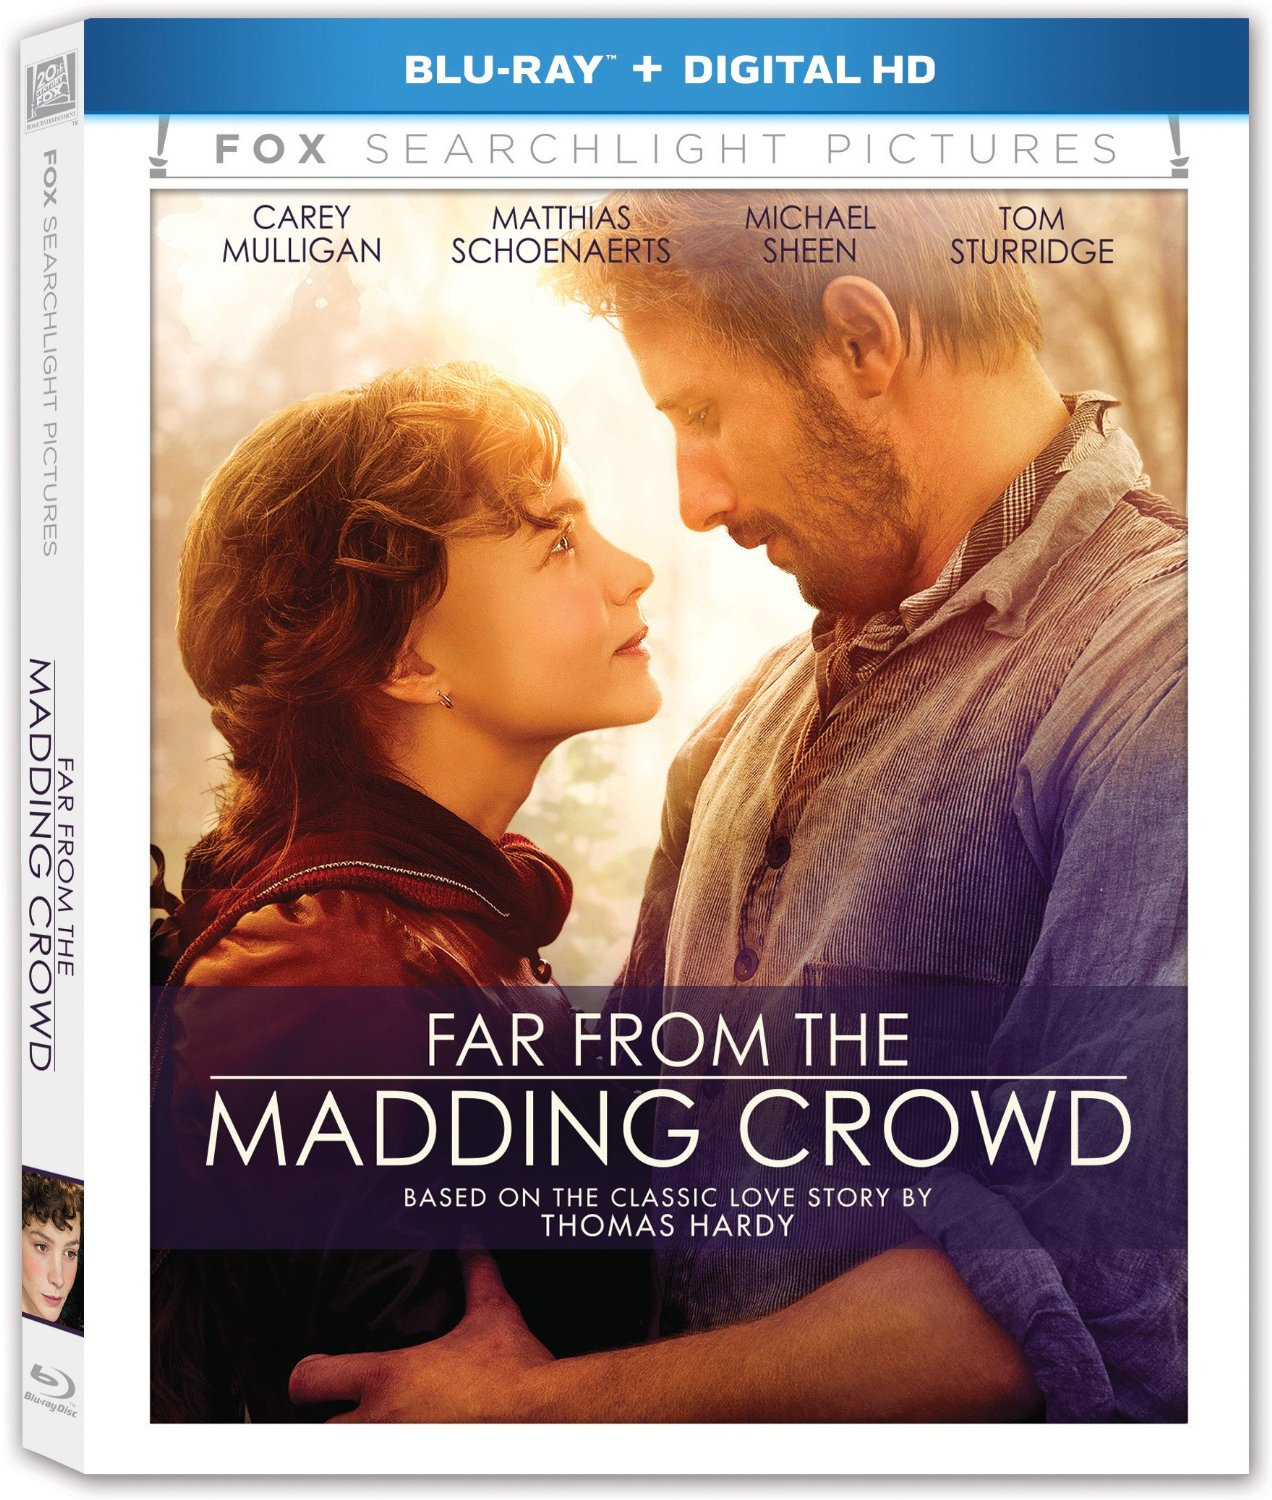 """the madding crowd 10 essay Hardy's use of time in """"far from the madding crowd"""" is a very important feature of the novel, which hardy portrays very effectively he bases a typical year."""